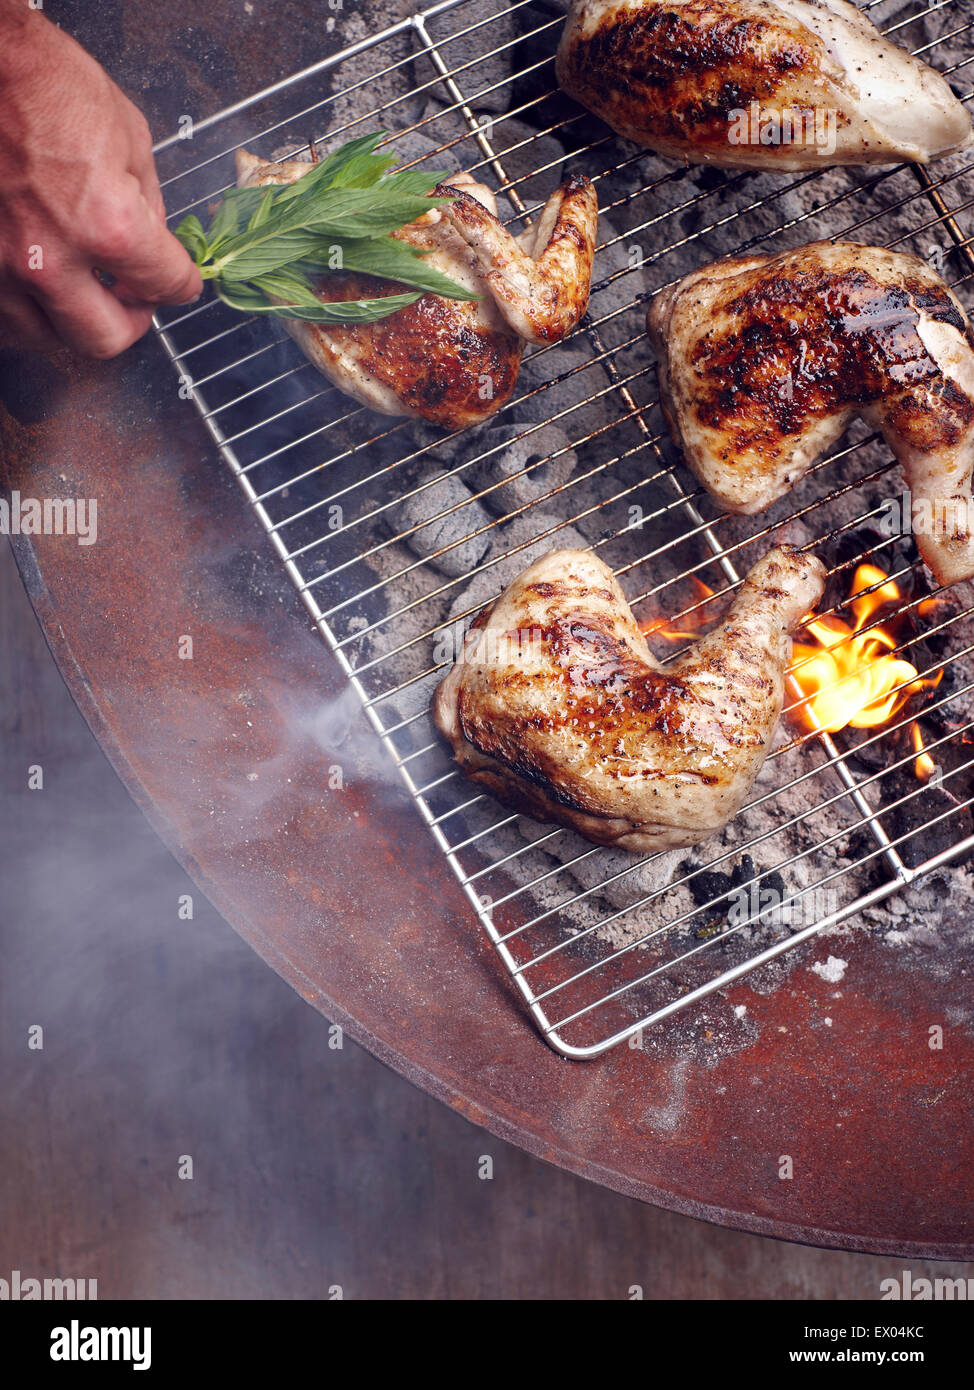 Mans hand grilling Guam chicken legs on barbecue - Stock Image